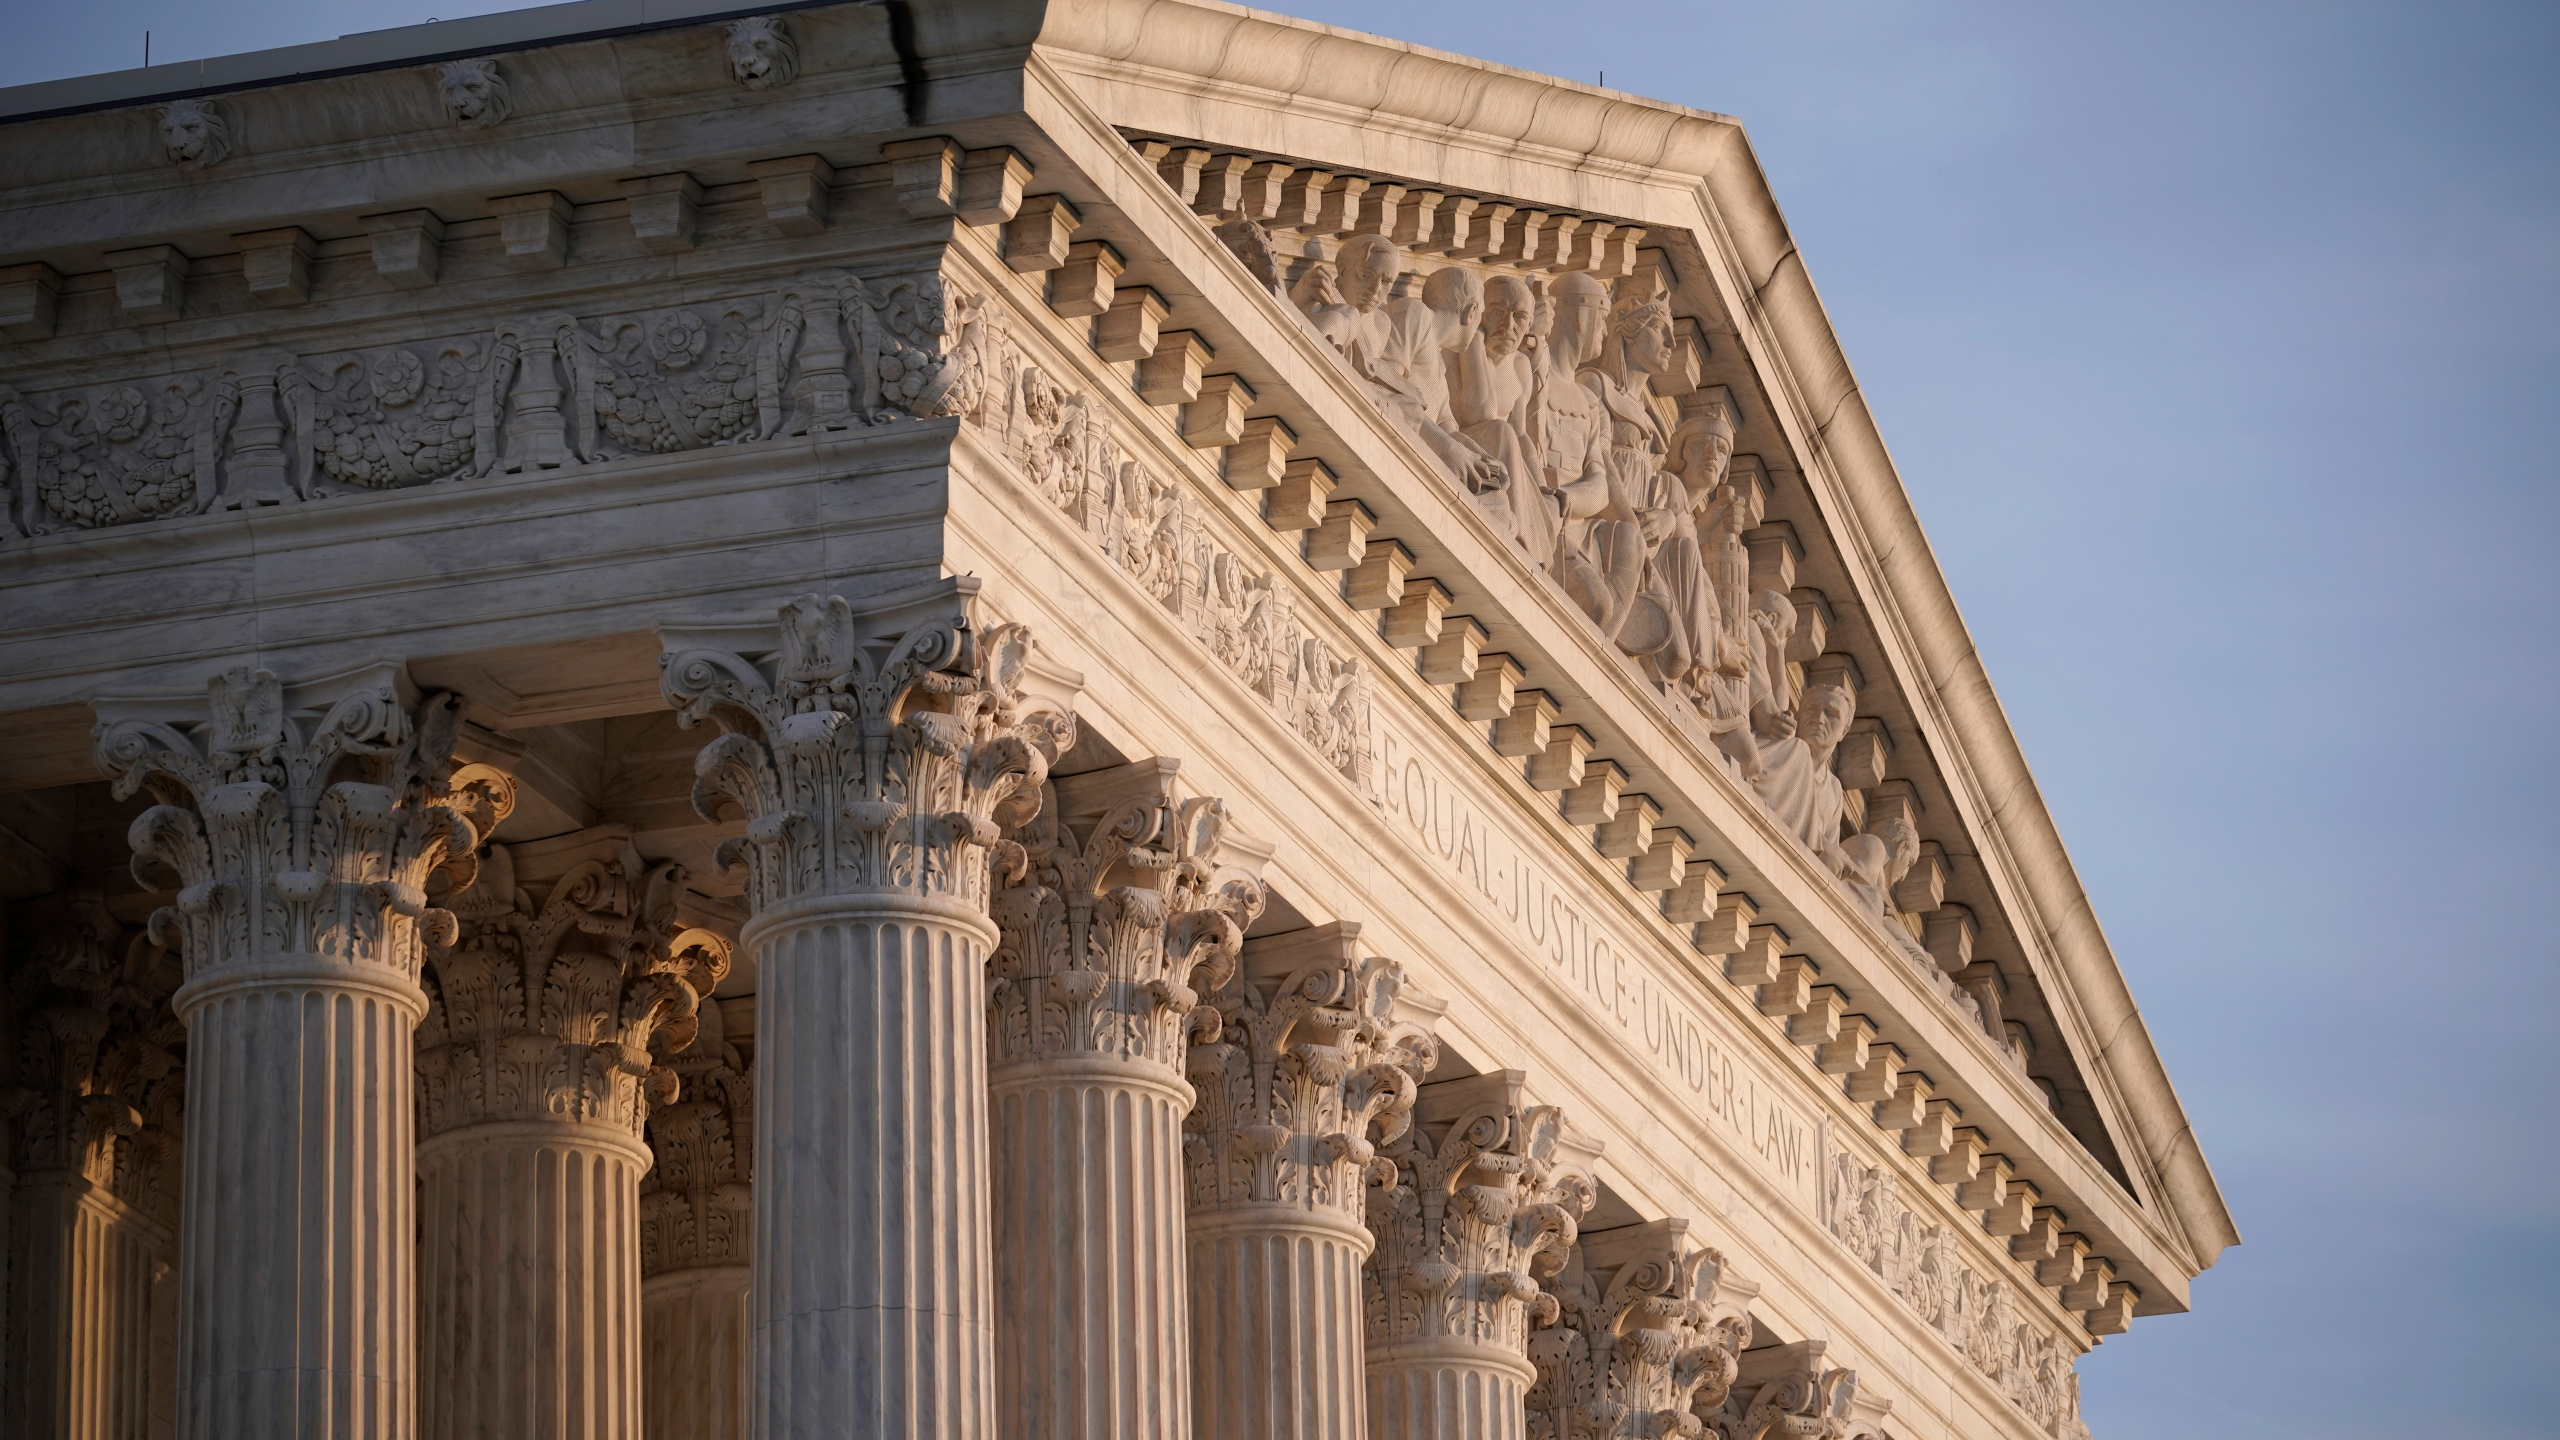 In this Nov. 5, 2020, file photo the Supreme Court is seen in Washington. With abortion and guns already on the agenda, the conservative-dominated Supreme Court is considering adding a third blockbuster issue _ whether to ban consideration of race in college admissions. (AP Photo/J. Scott Applewhite, File)